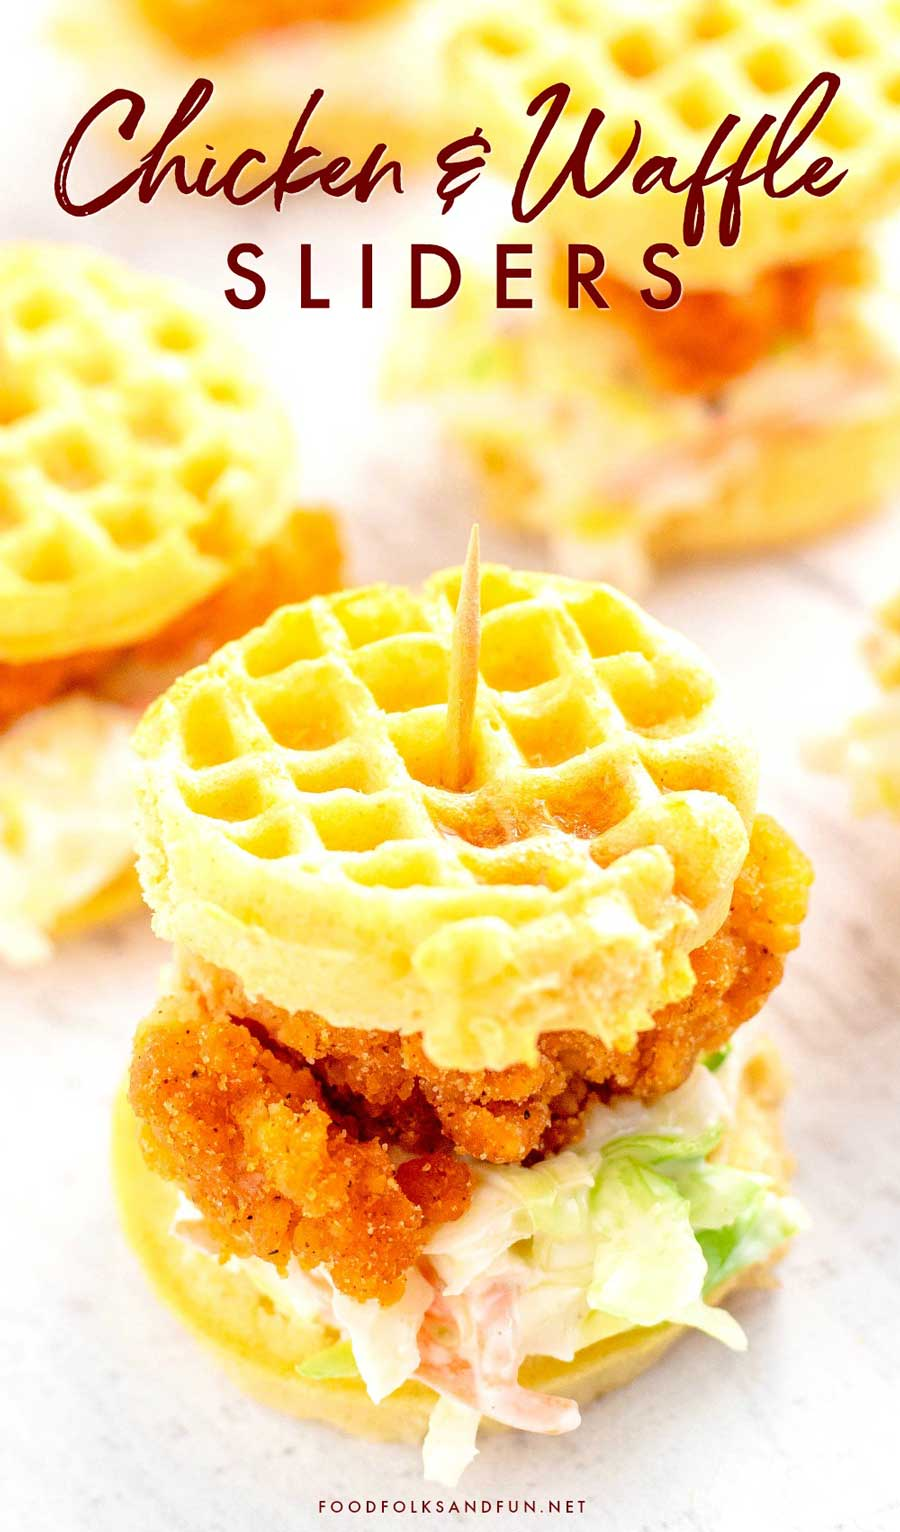 Easy Chicken and Waffle Sliders recipe